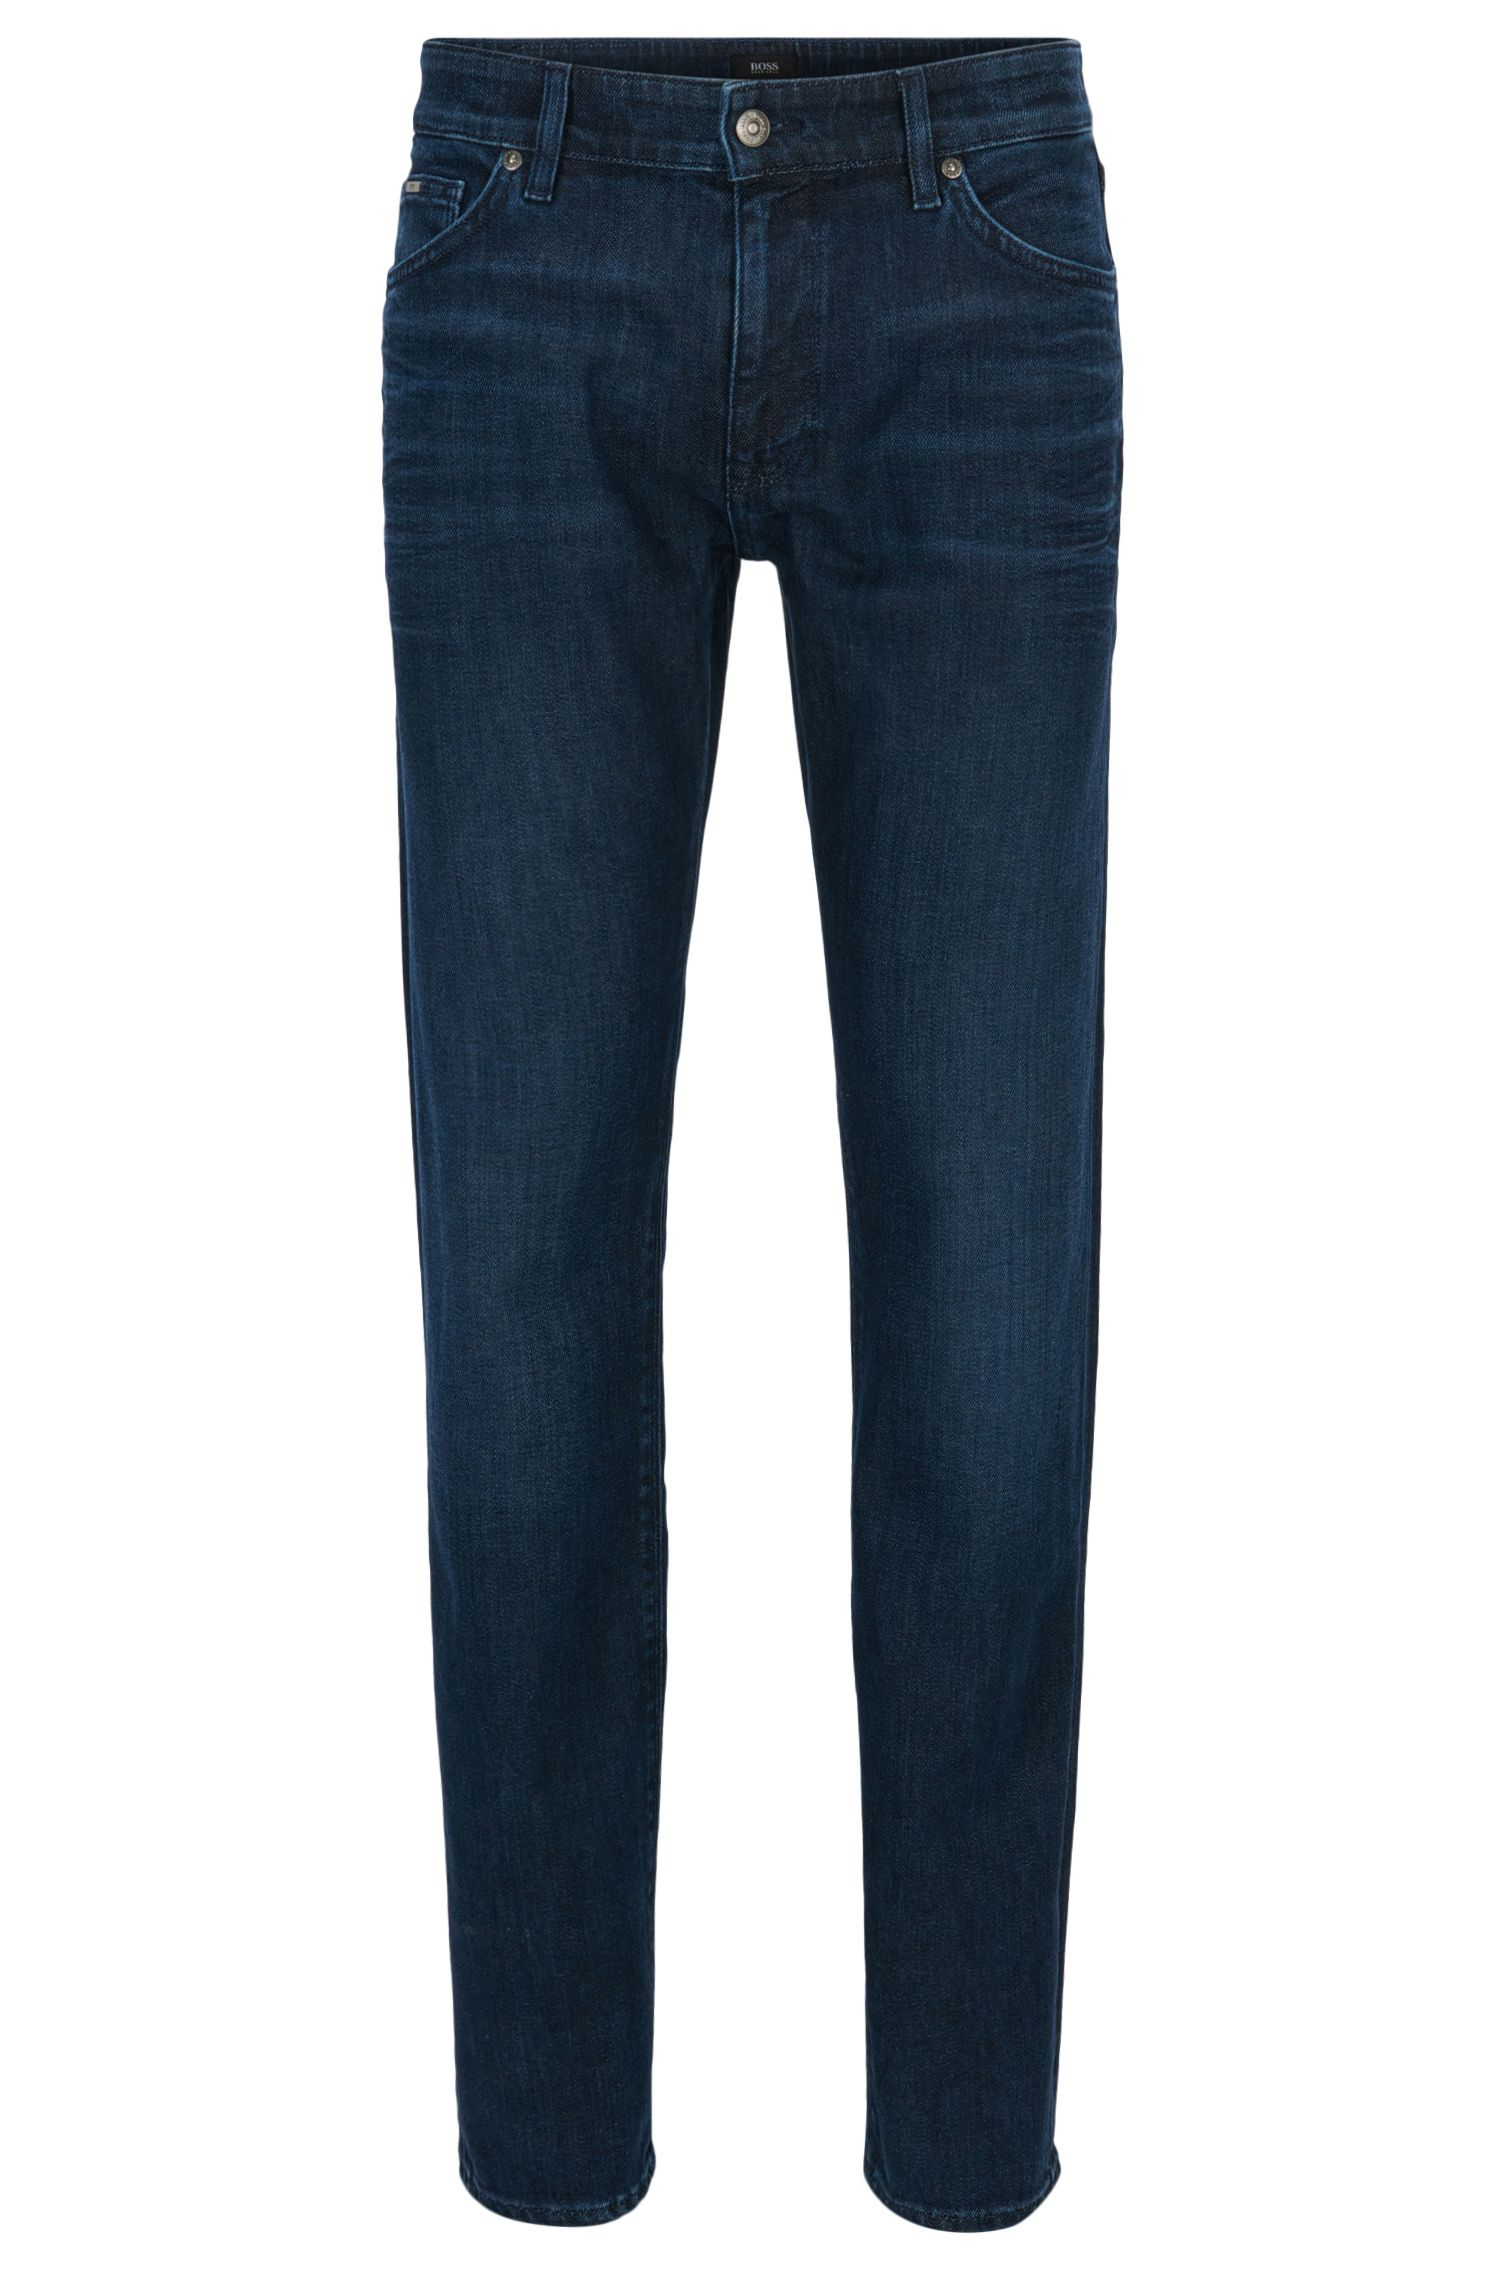 Jean Regular Fit en denim stretch bleu foncé, au délavage moyen